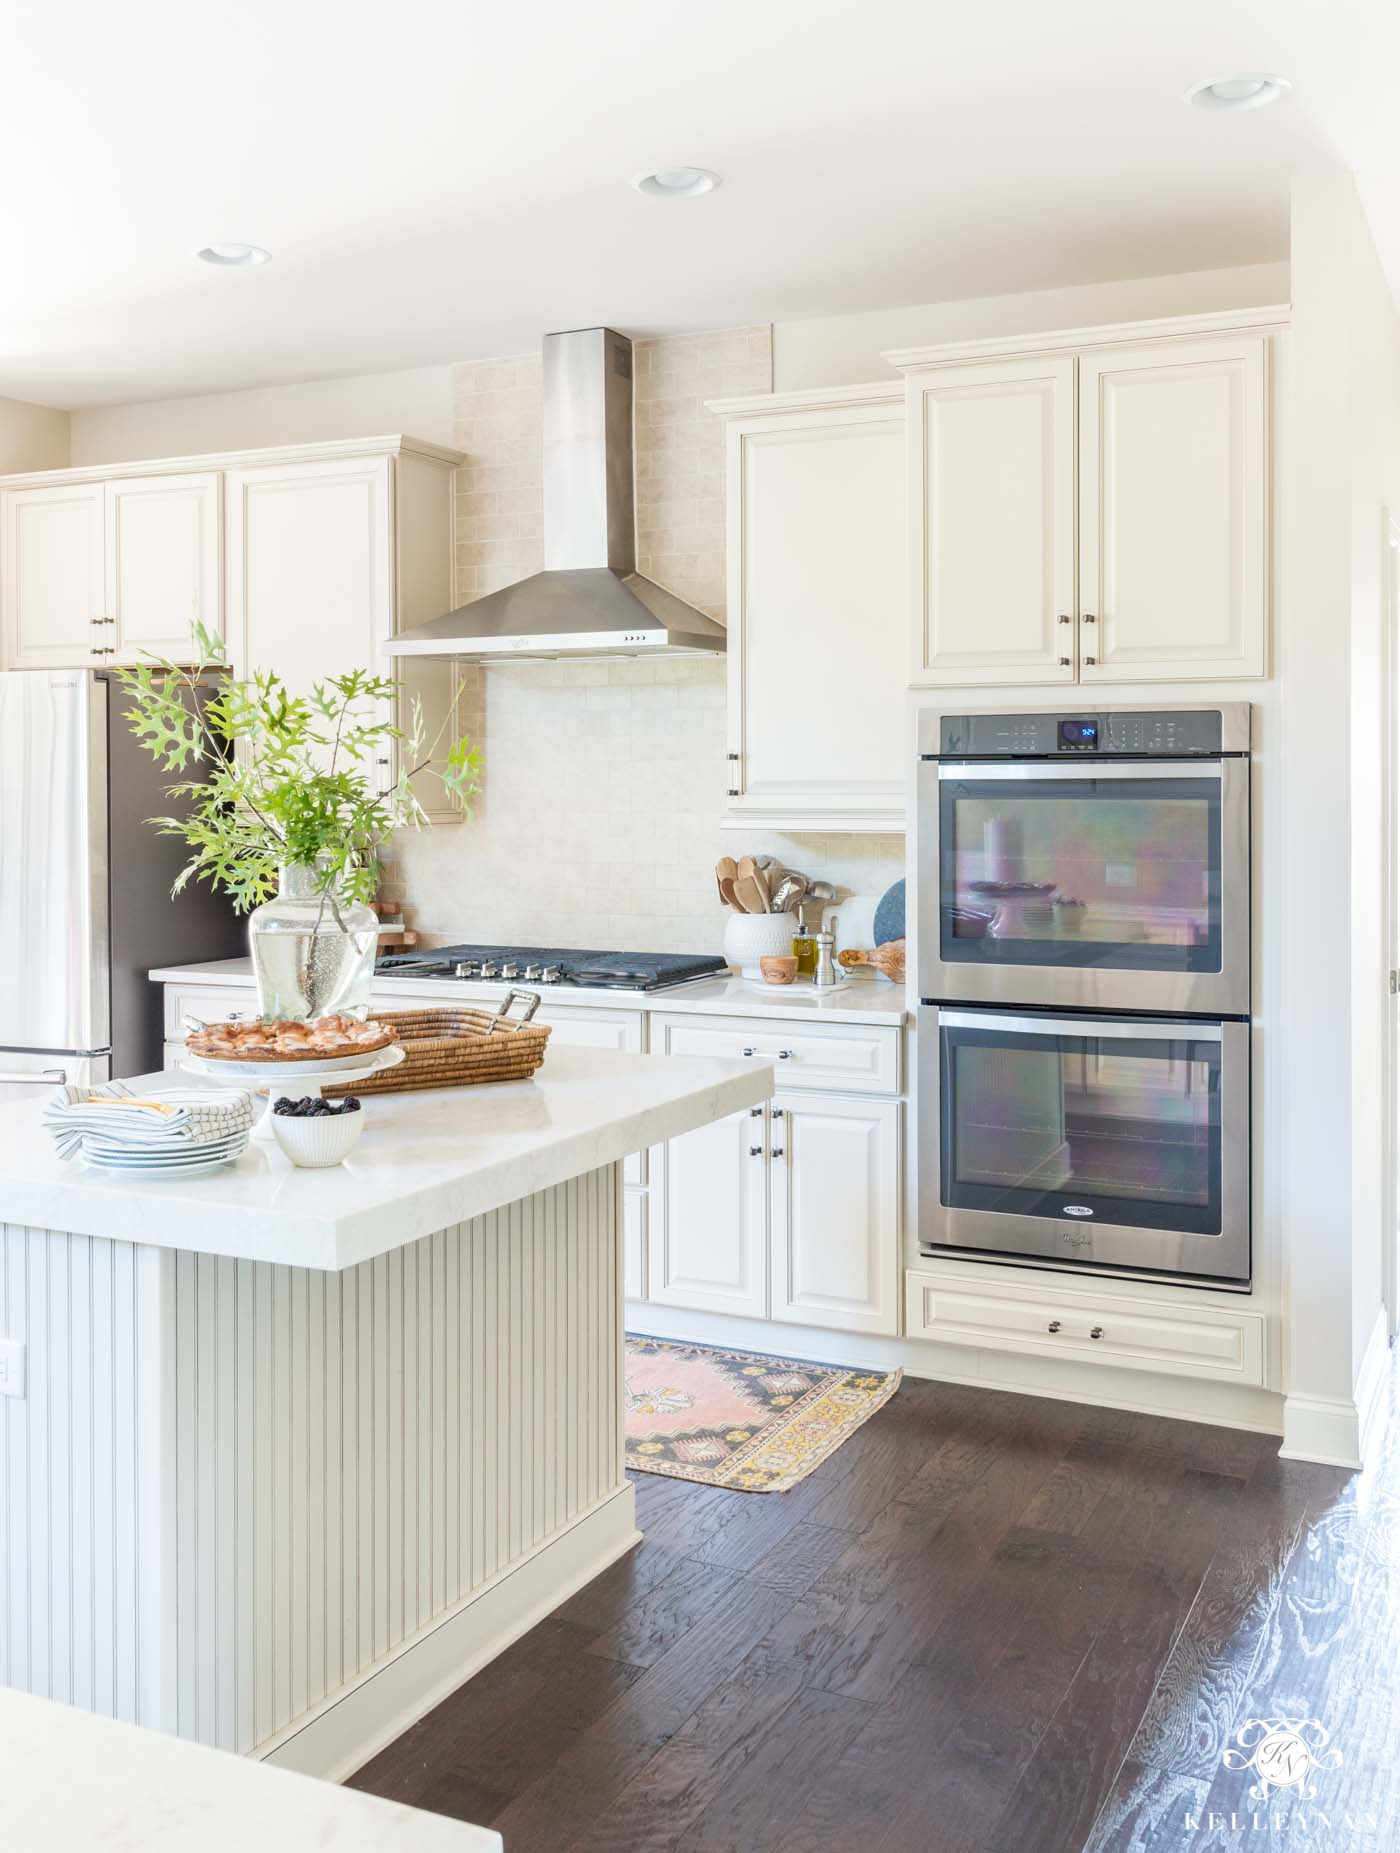 How to update a cream kitchen with raised panel cabinets